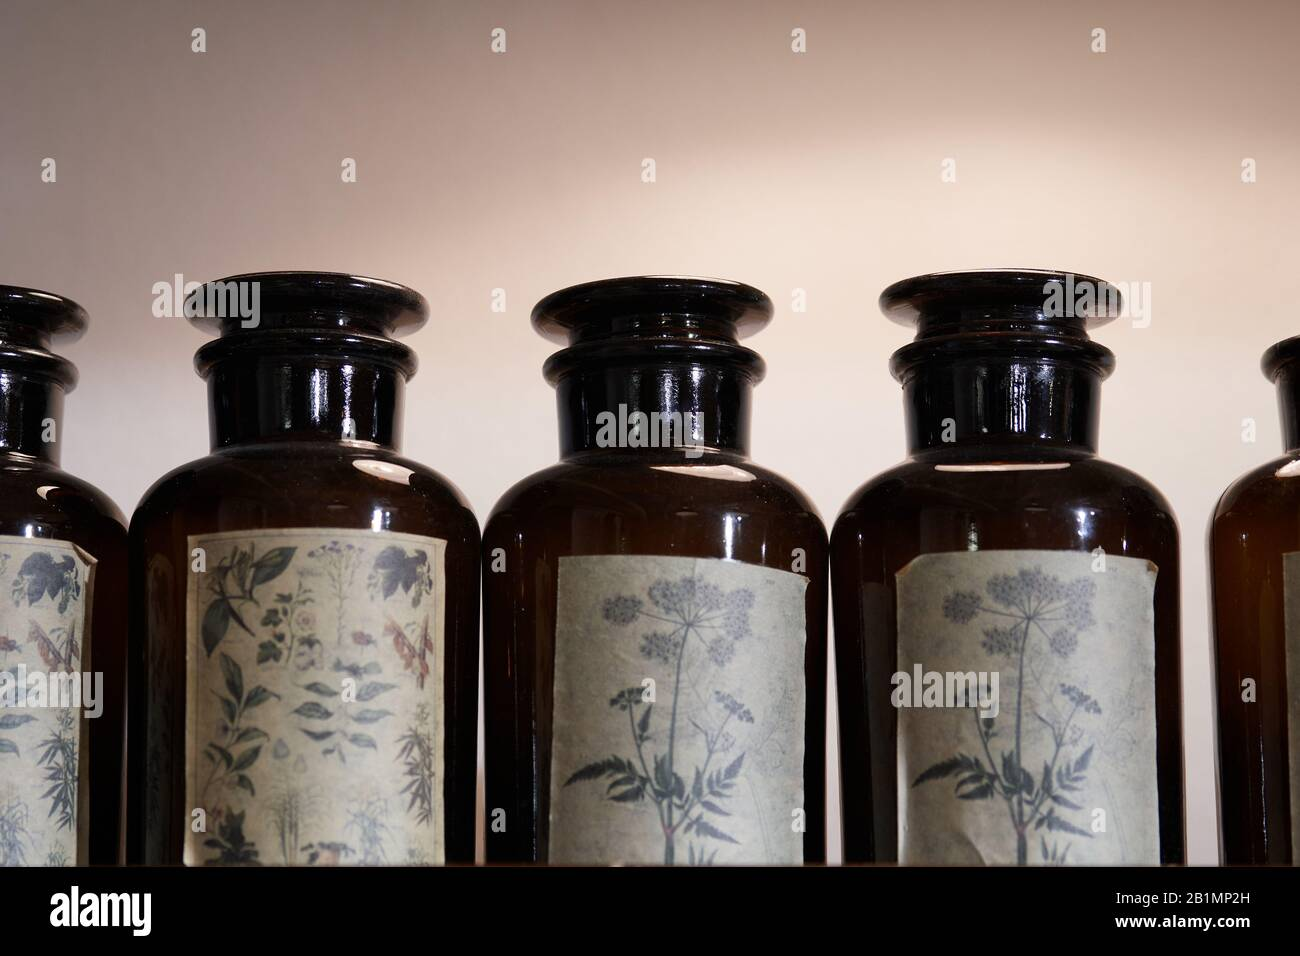 A row of vintage brown glass apothecary jars with used labels displaying herbal drawings Stock Photo